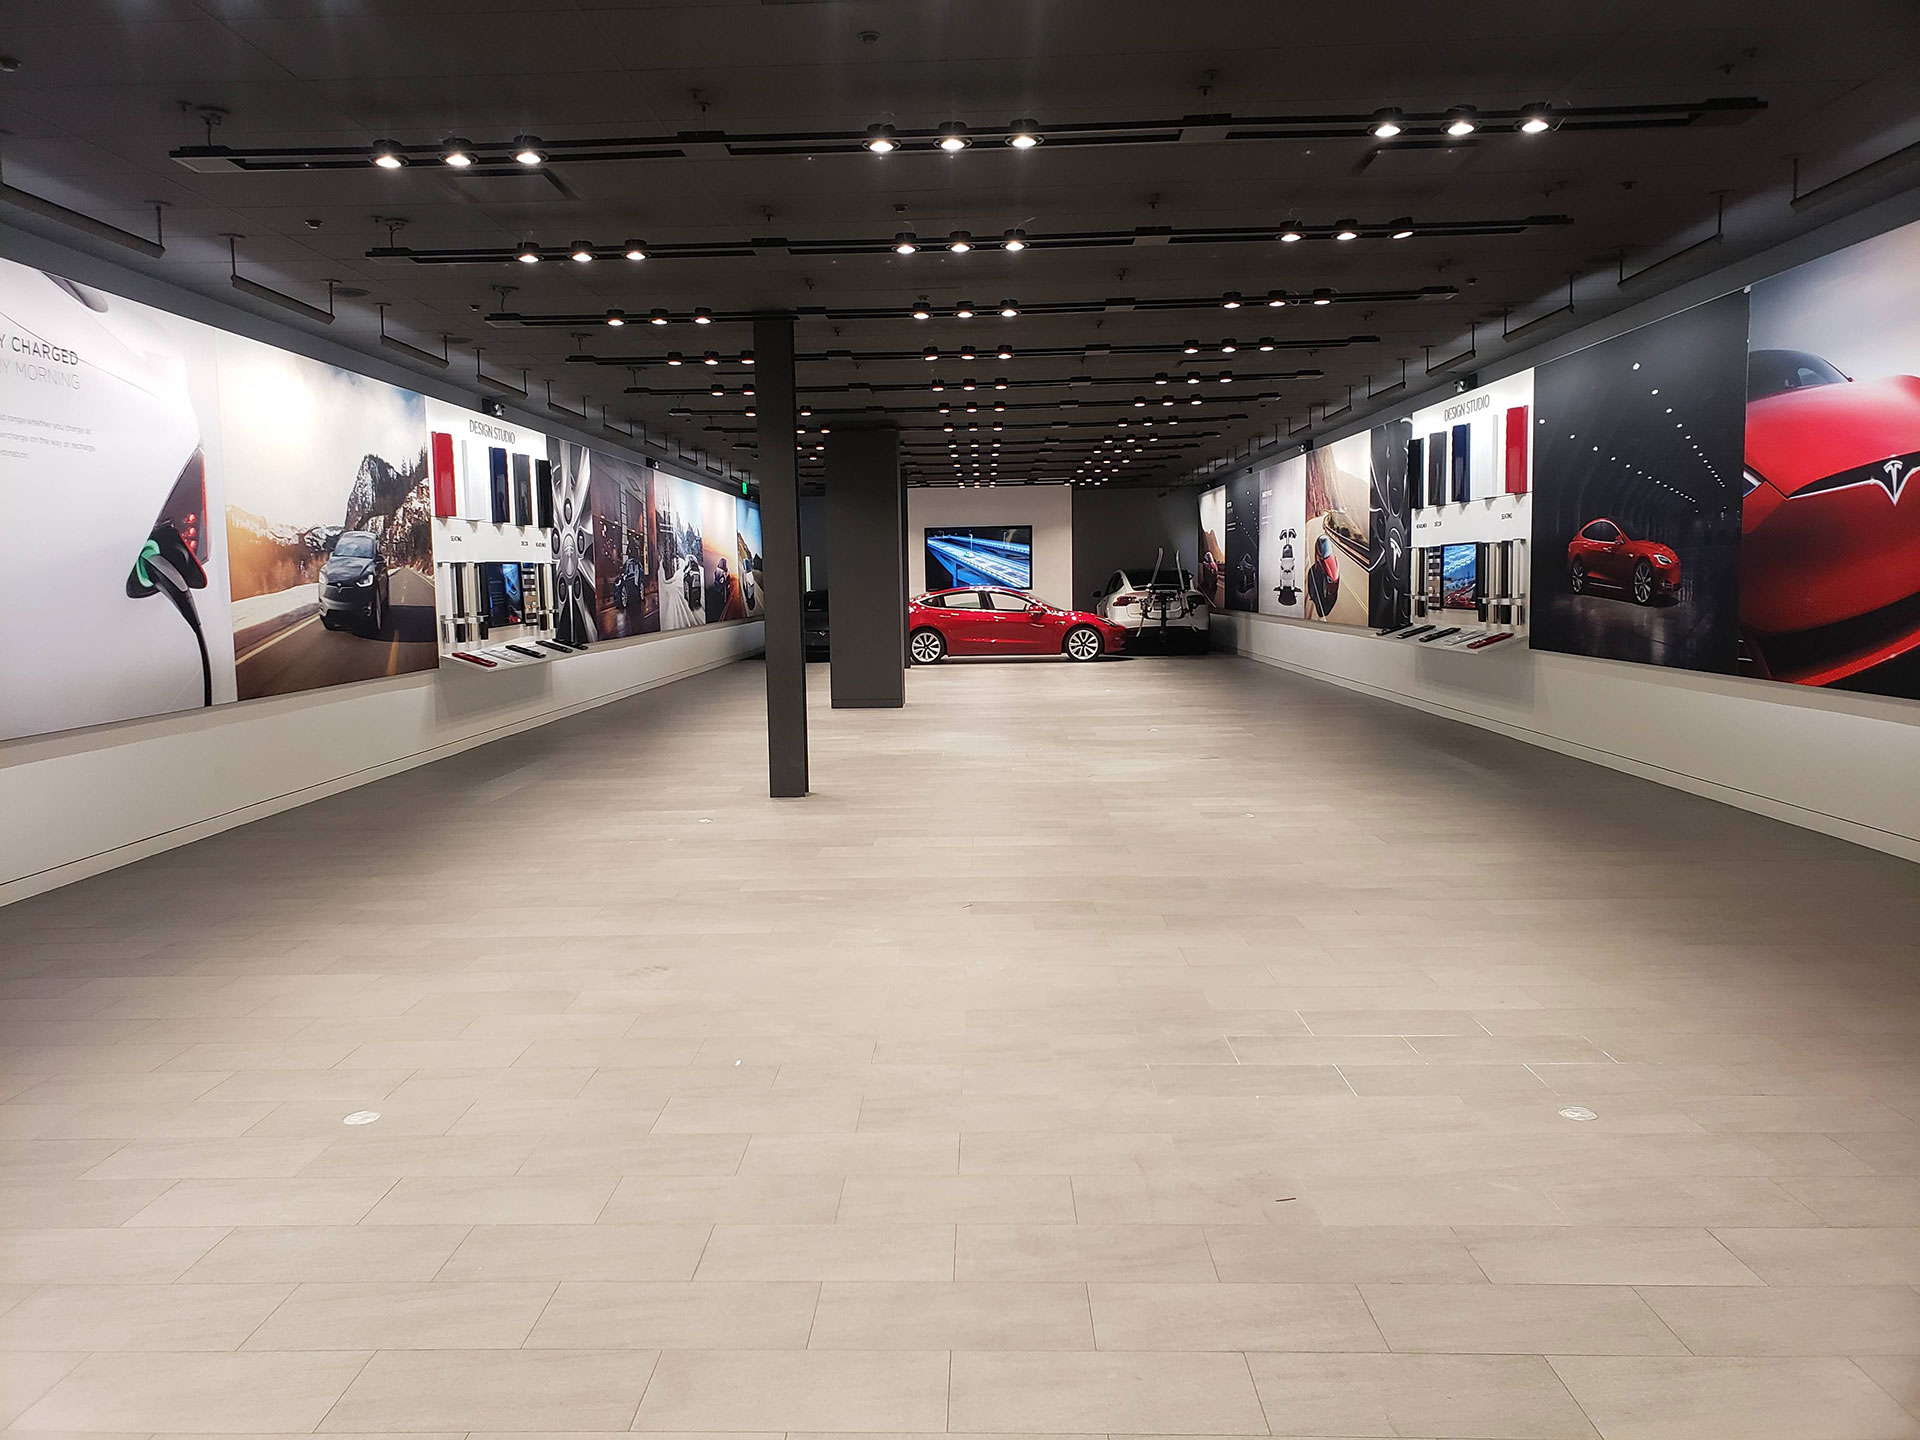 An almost empty Tesla Store, getting ready for transition to the online sales model.